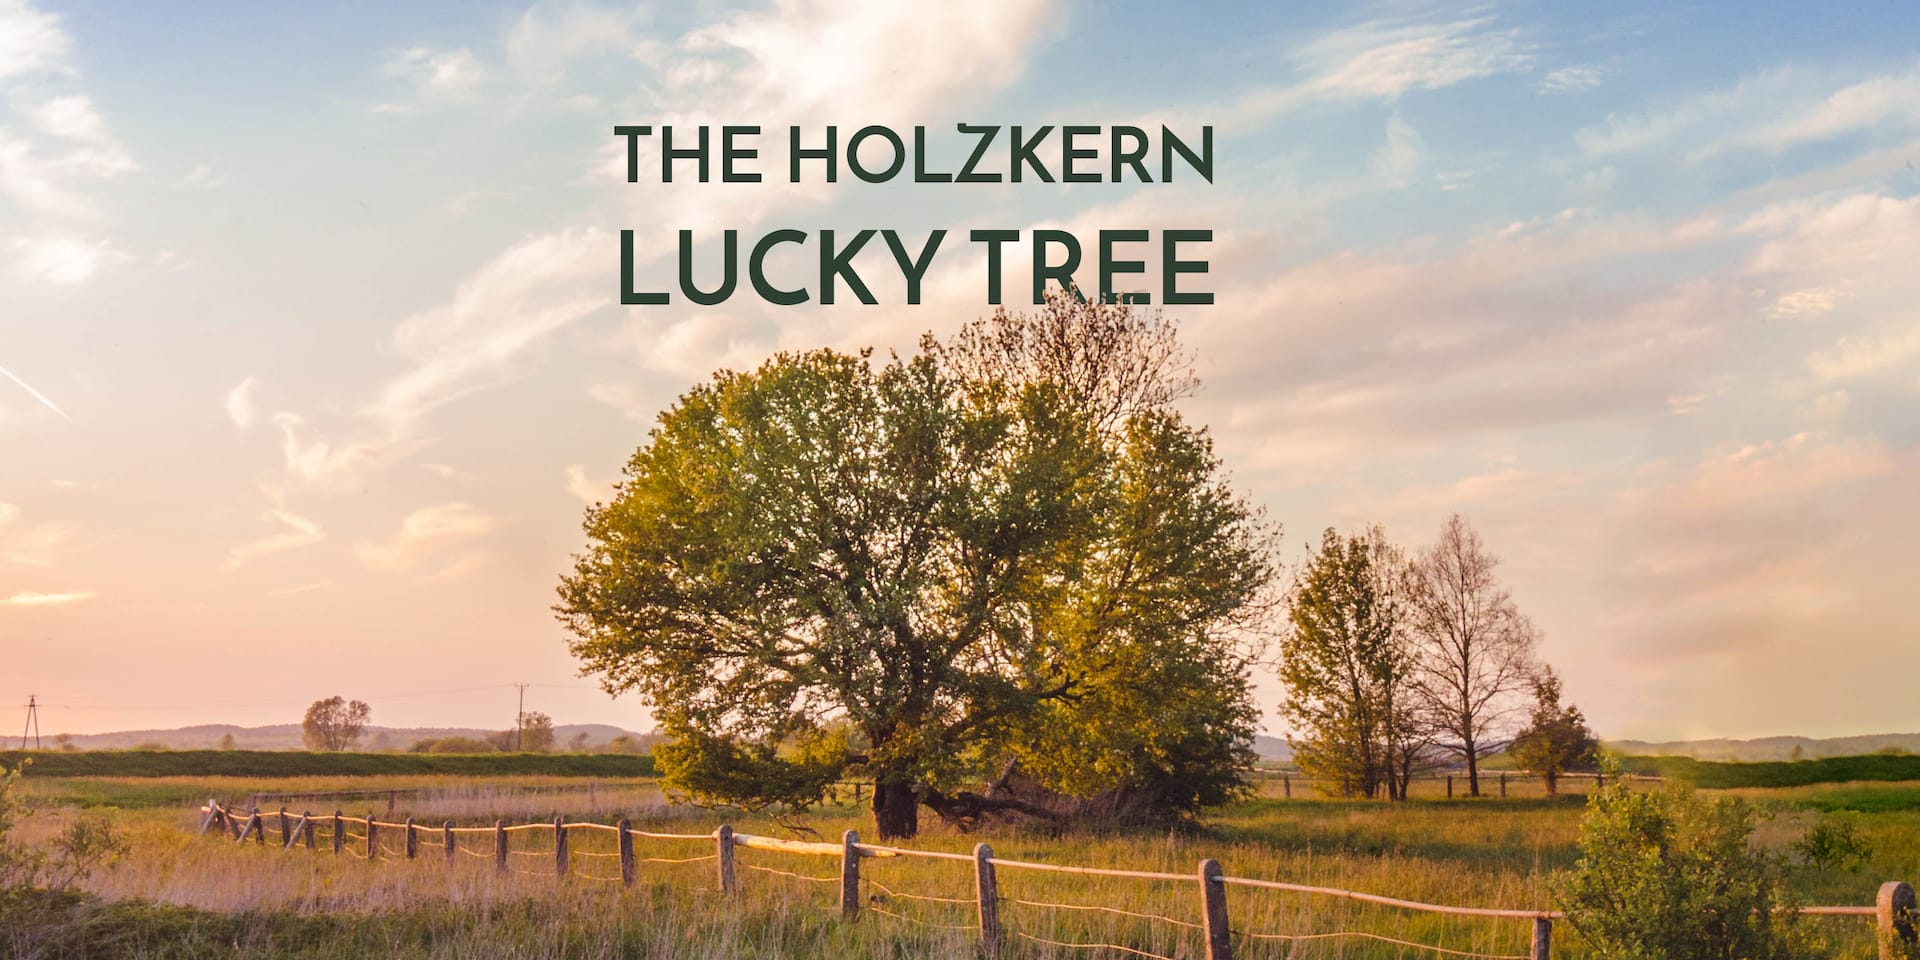 The Holzkern Lucky Tree